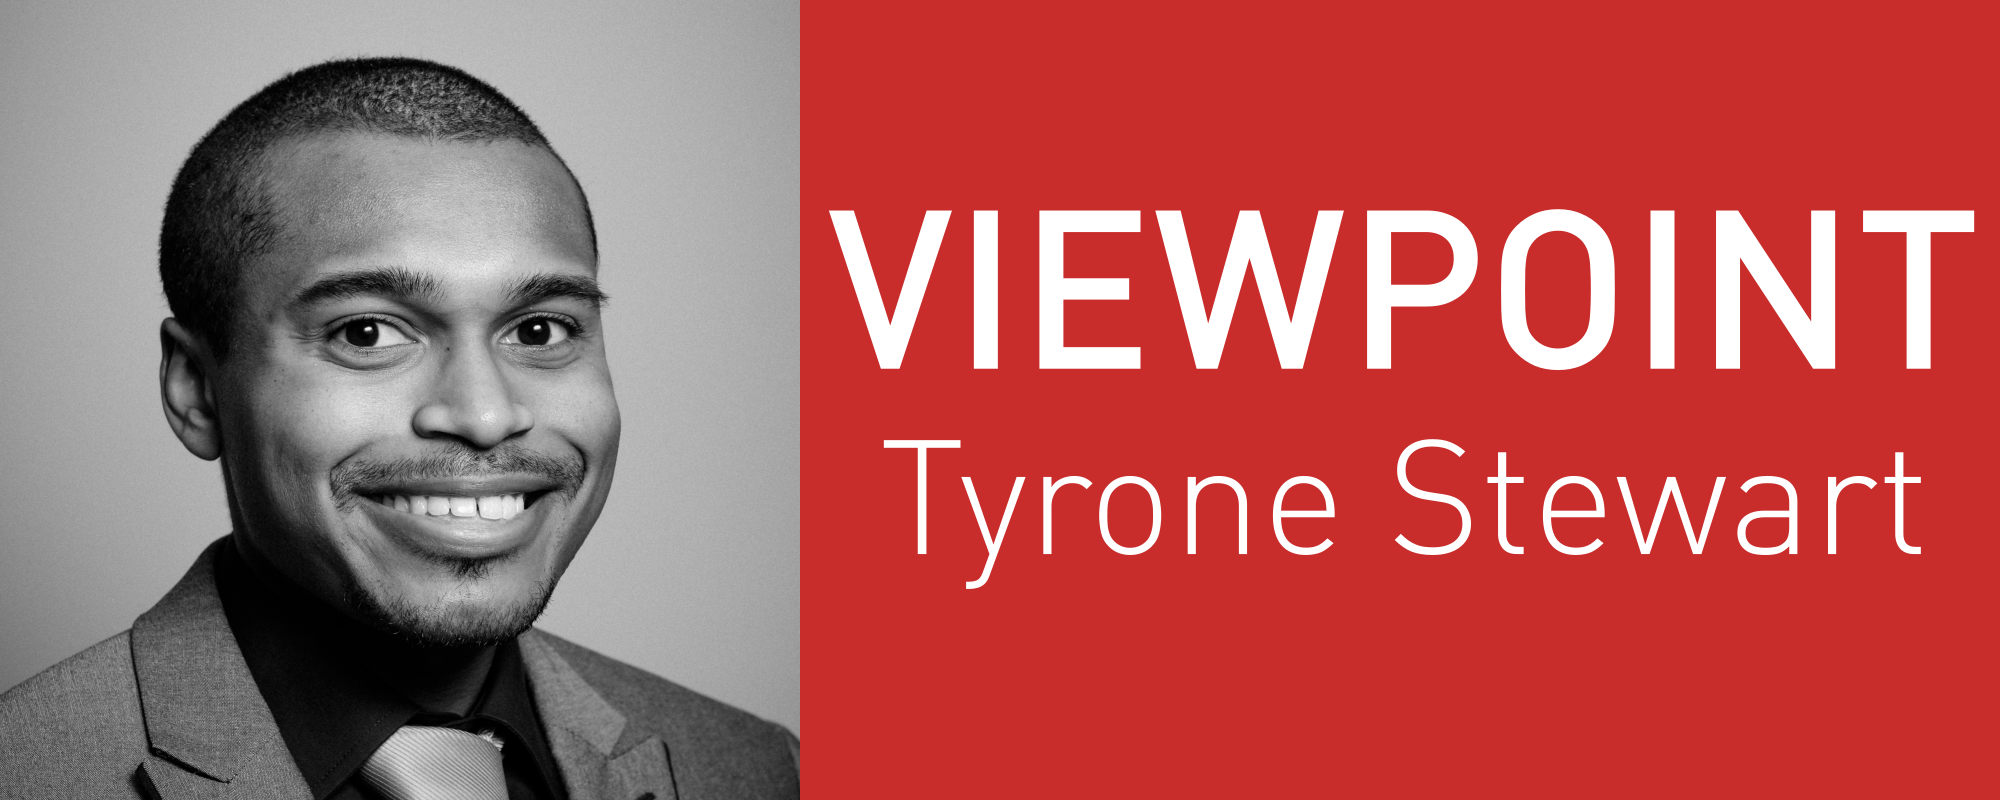 Viewpoint Tyrone Stewart